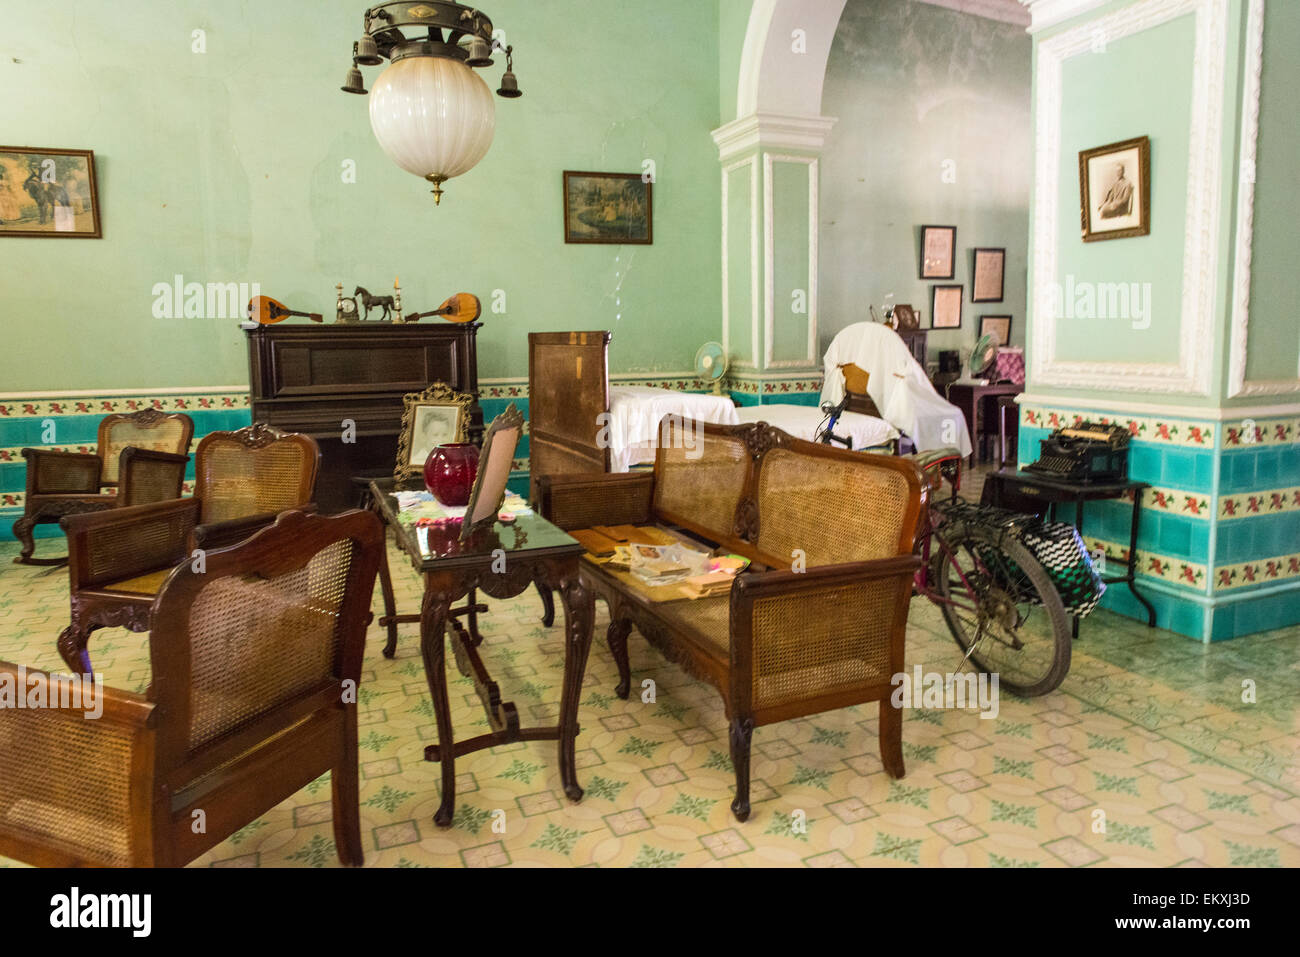 Cuba trinidad typical cuban home old antique furniture ornate walls stock photo royalty free for Living room furniture trinidad